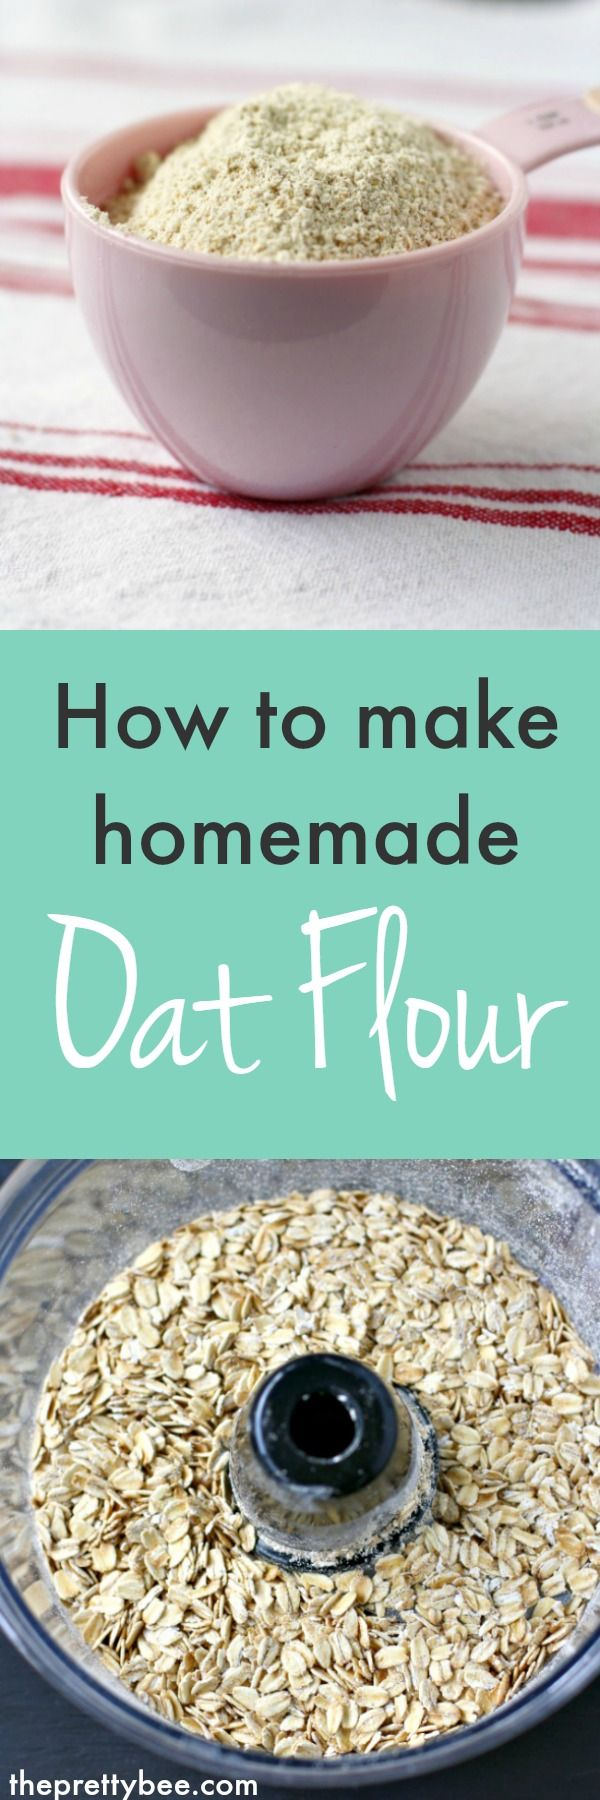 How To Make Homemade Oat Flour It S Easy Economical And Works Well For Cookies Cakes And Muffins Raw Food Recipes Paleo Kids Recipes Foods With Gluten